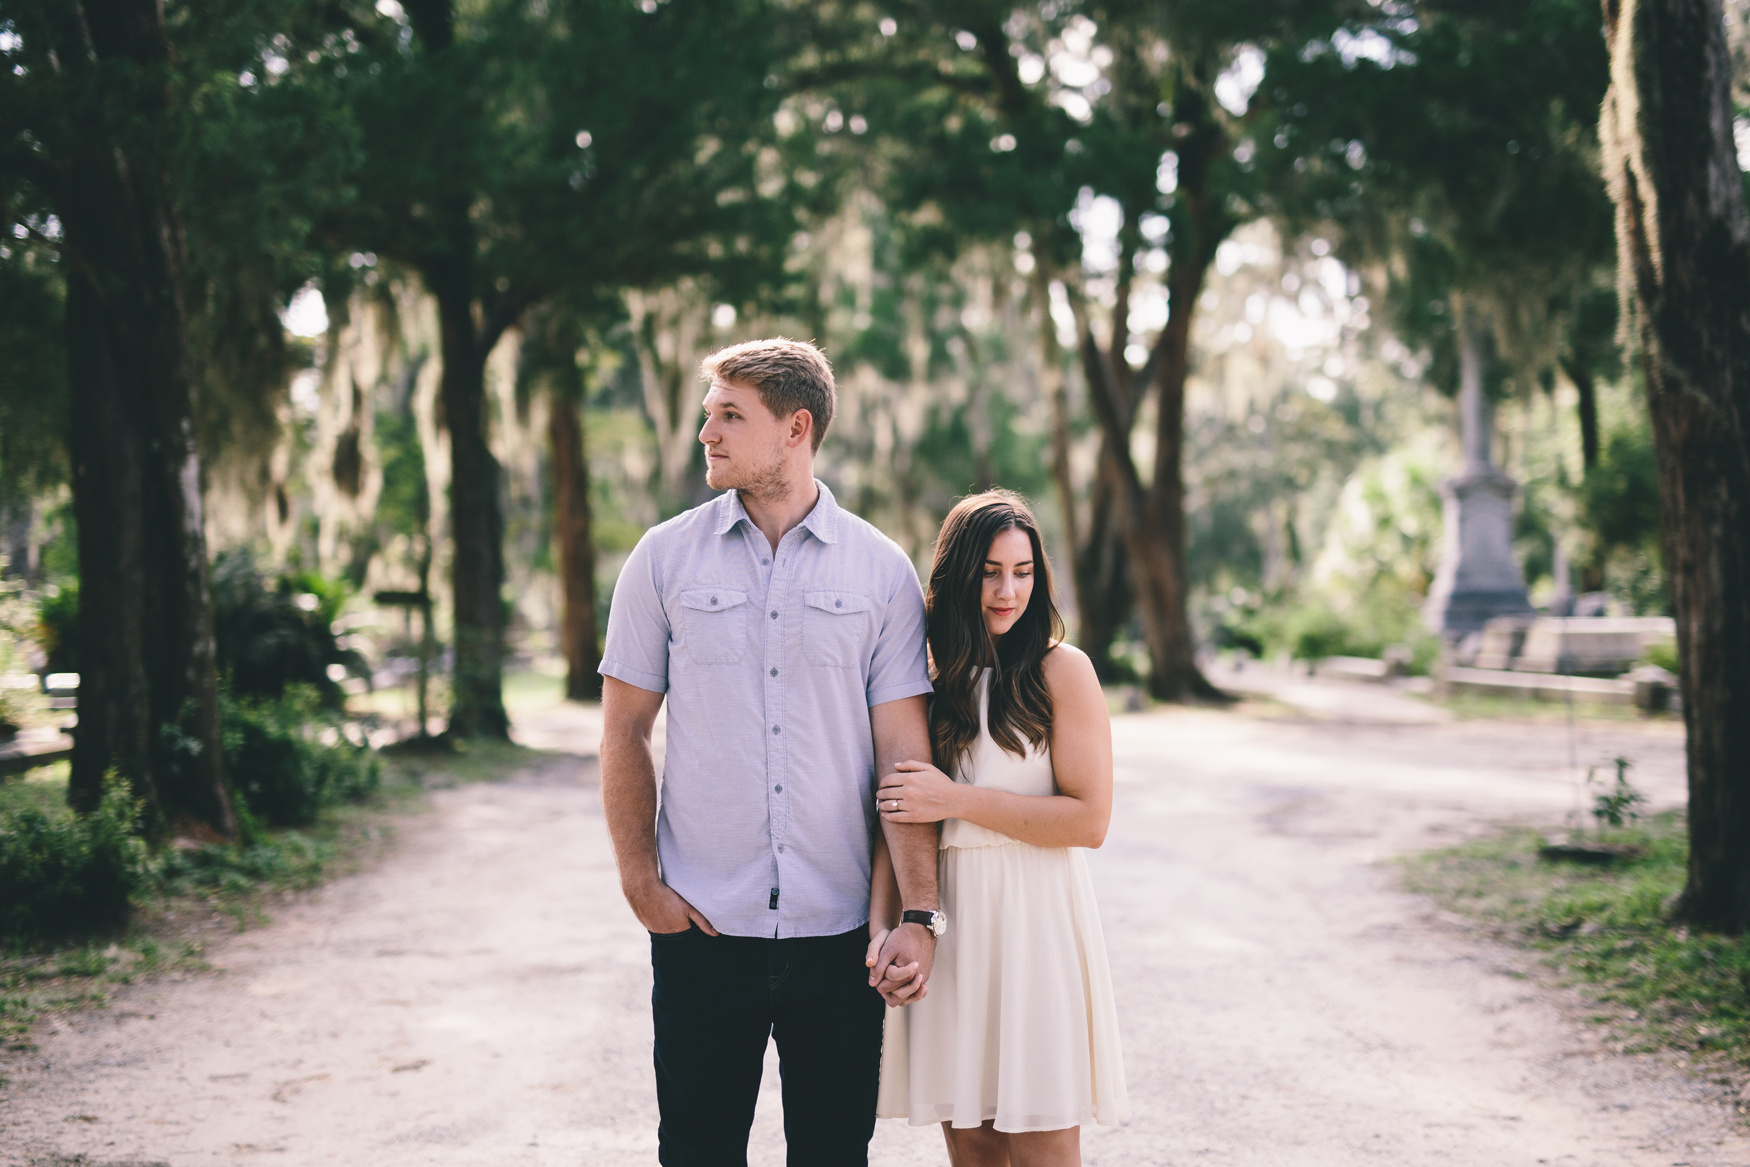 Caleb+Laura-Proposal-176.jpg